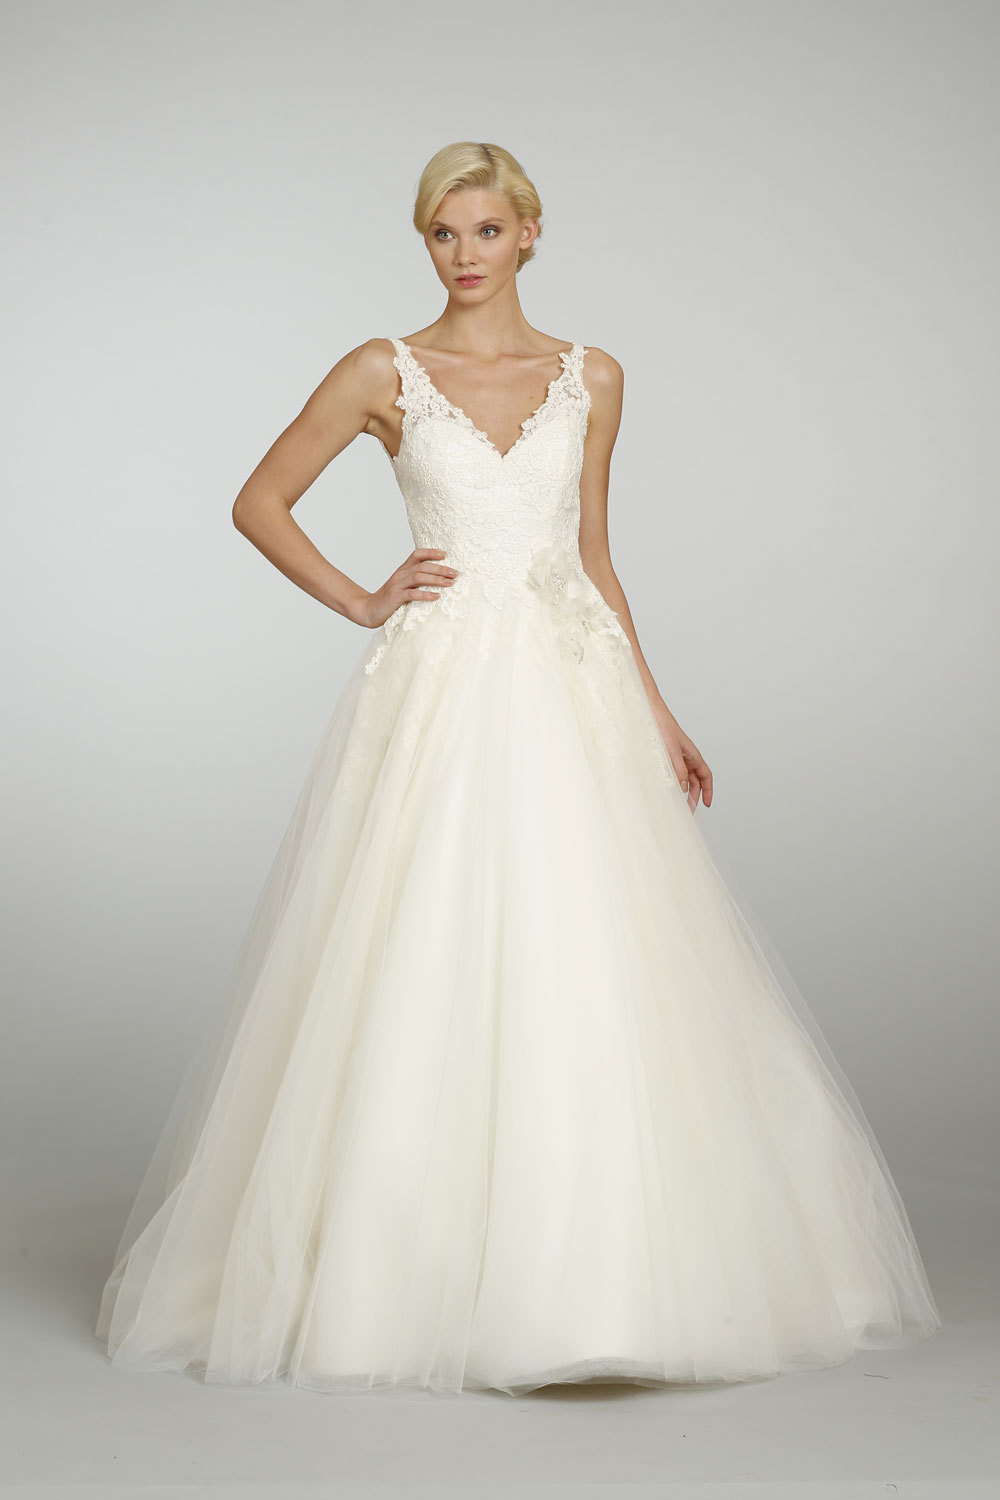 Spring-2013-wedding-dress-alvina-valenta-bridal-9301.full